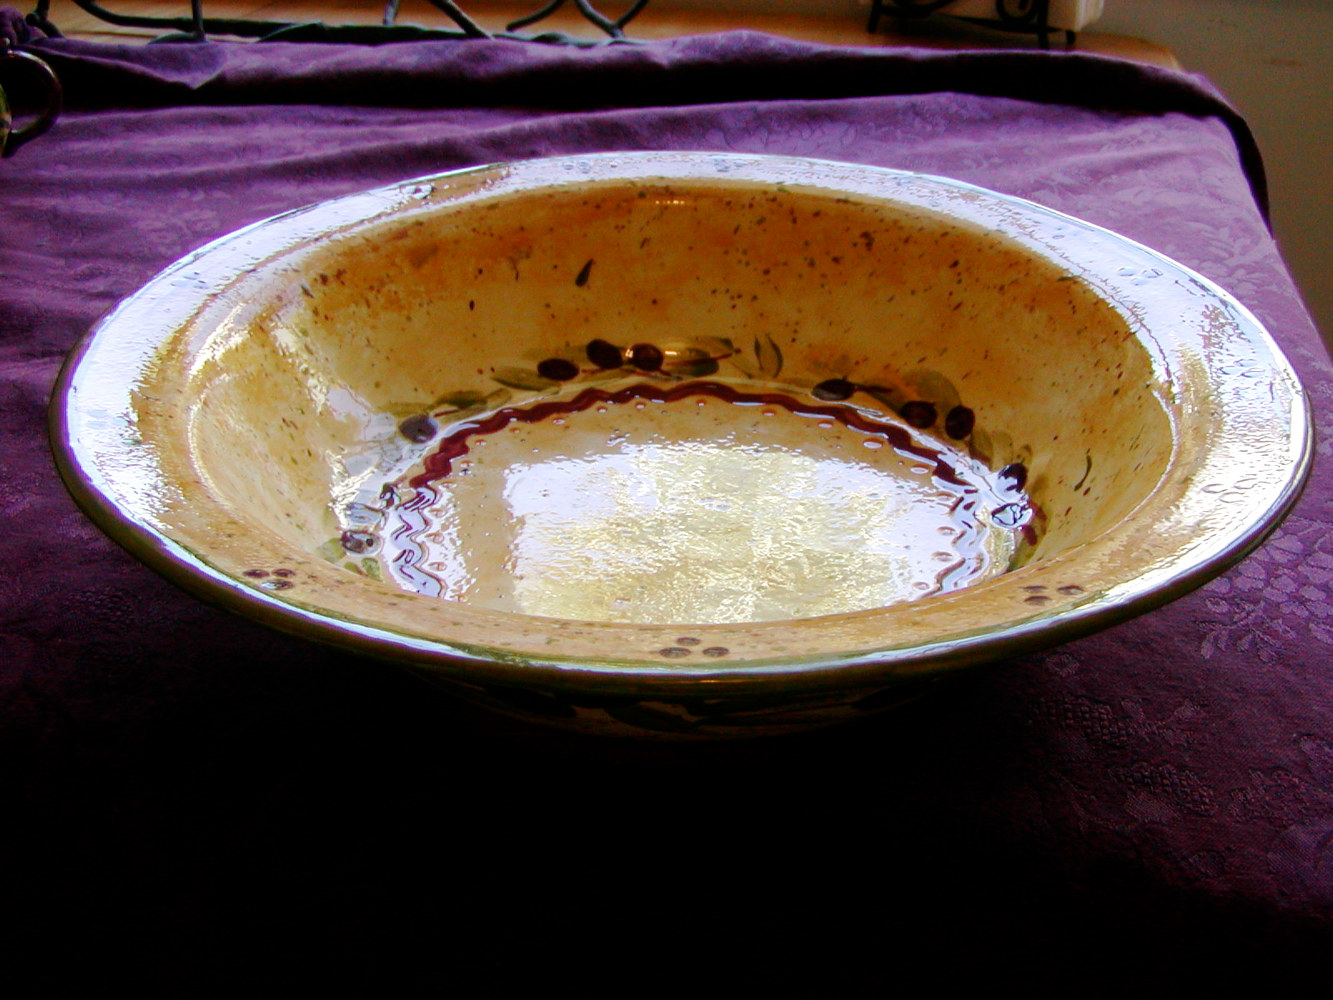 Painting Italianate Eclectic Glazeworks: Pasta Bowl by Victoria Avila